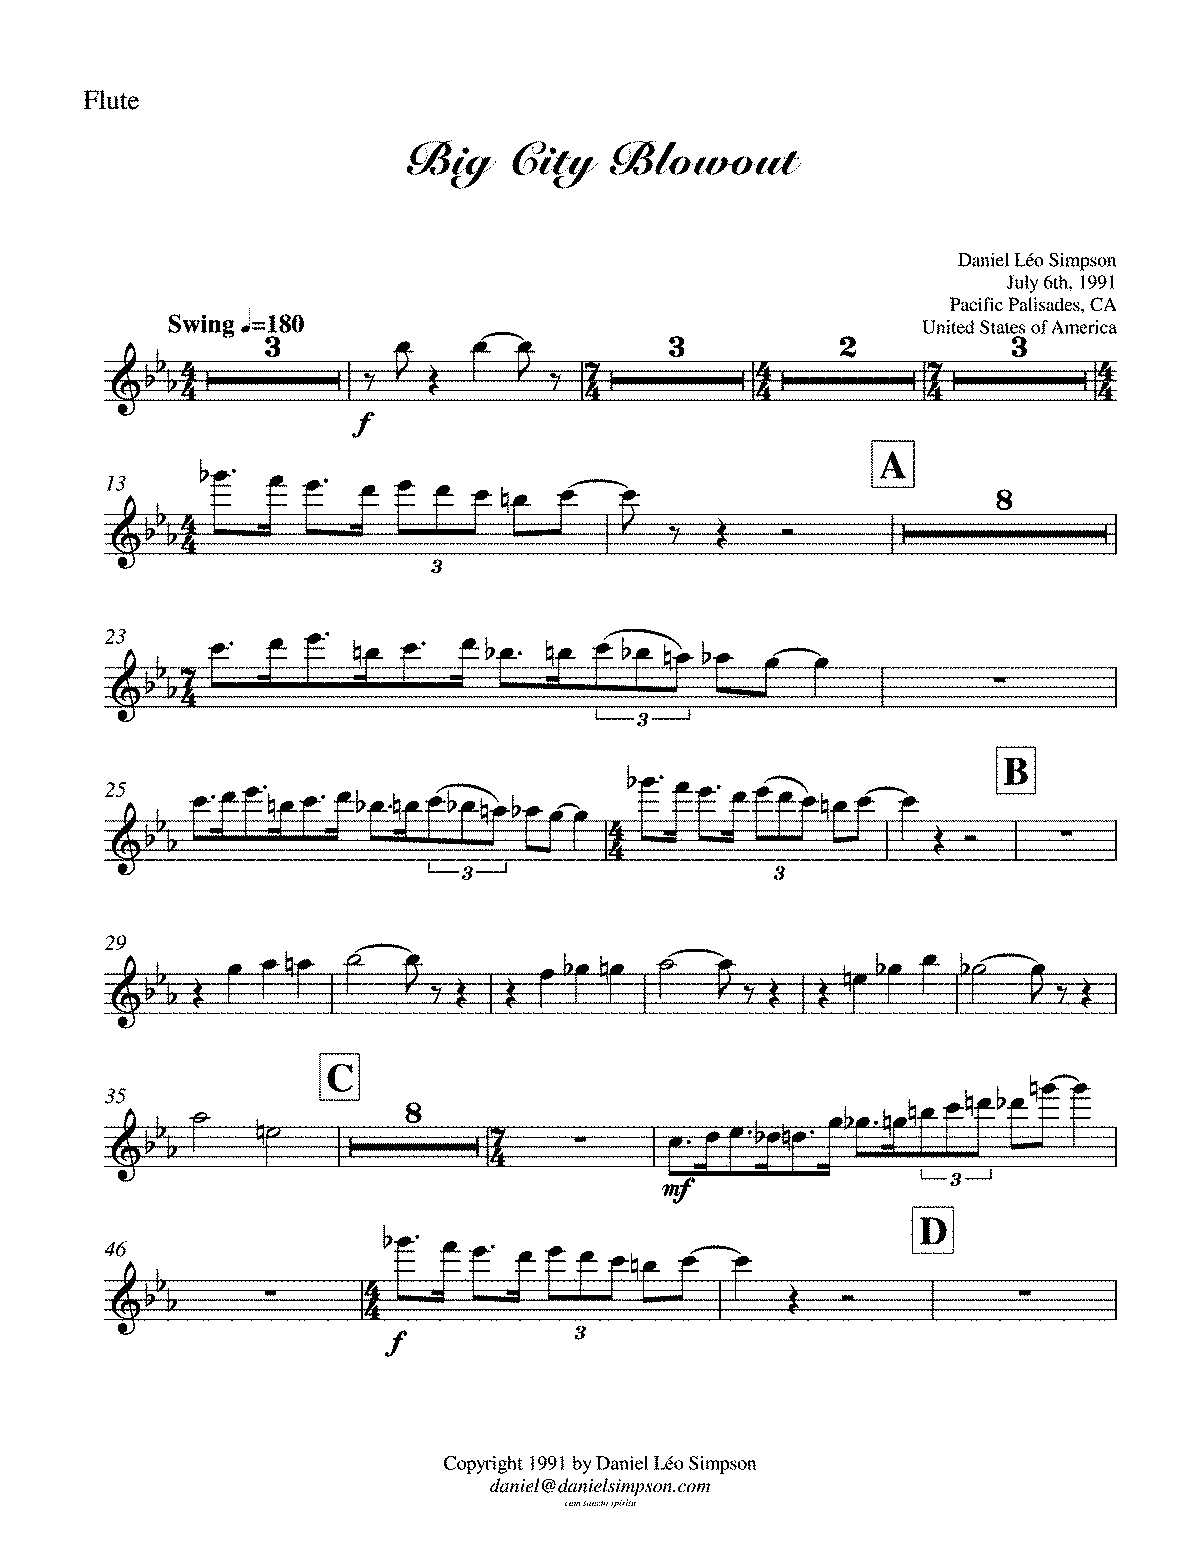 PMLP450355-FLUTE-Big-City-Blowout-simpson-imslp-041313.pdf